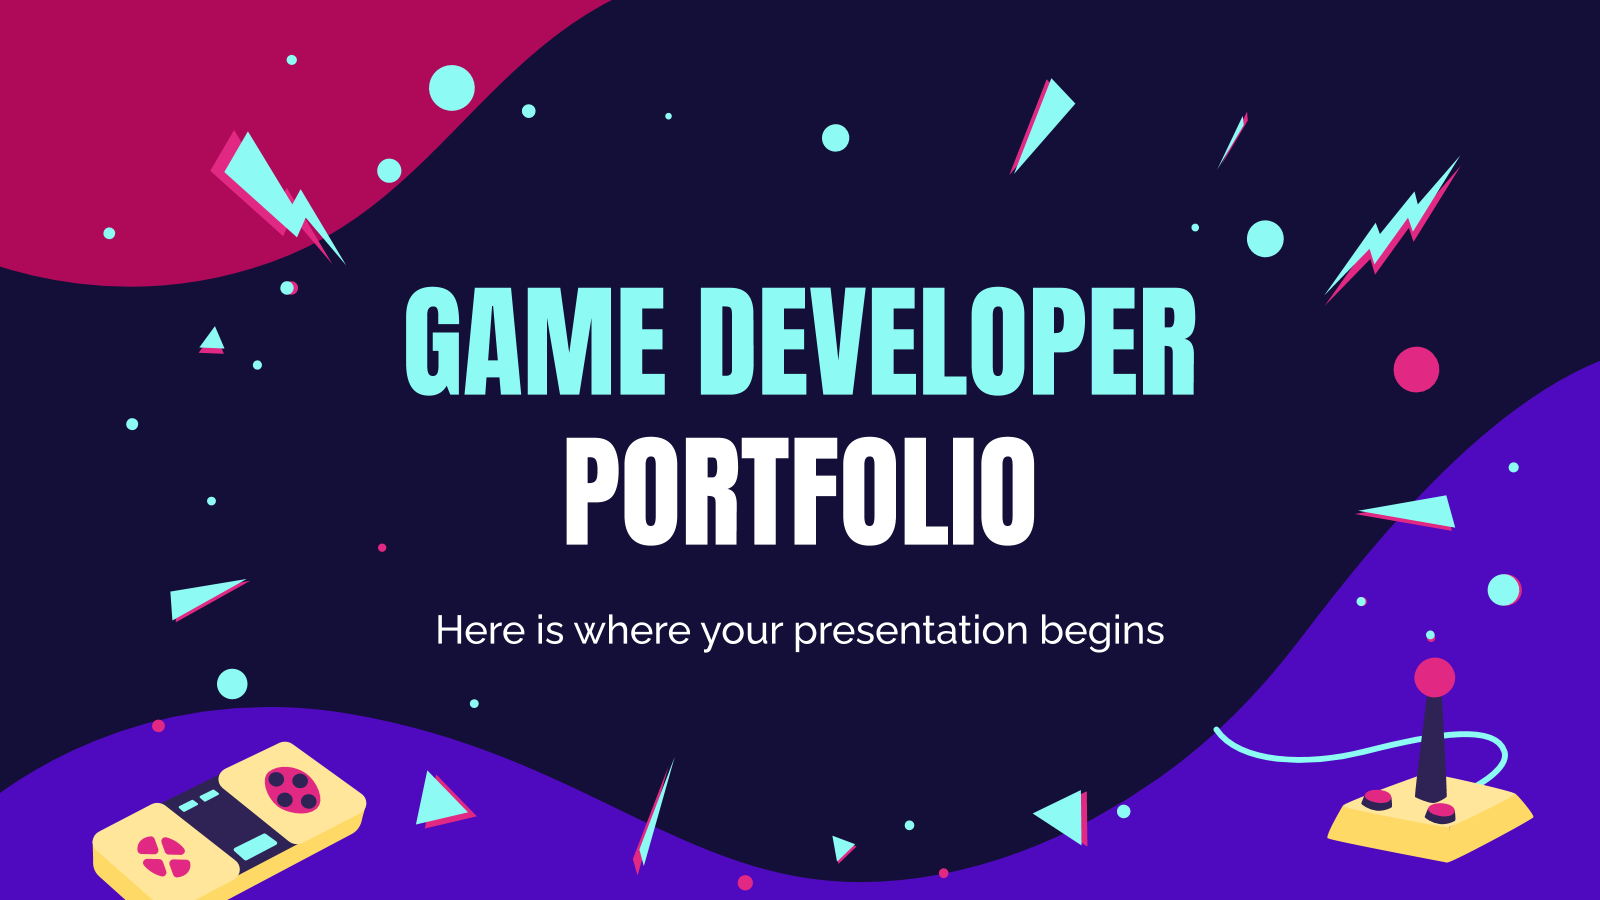 Game Developer Portfolio presentation template